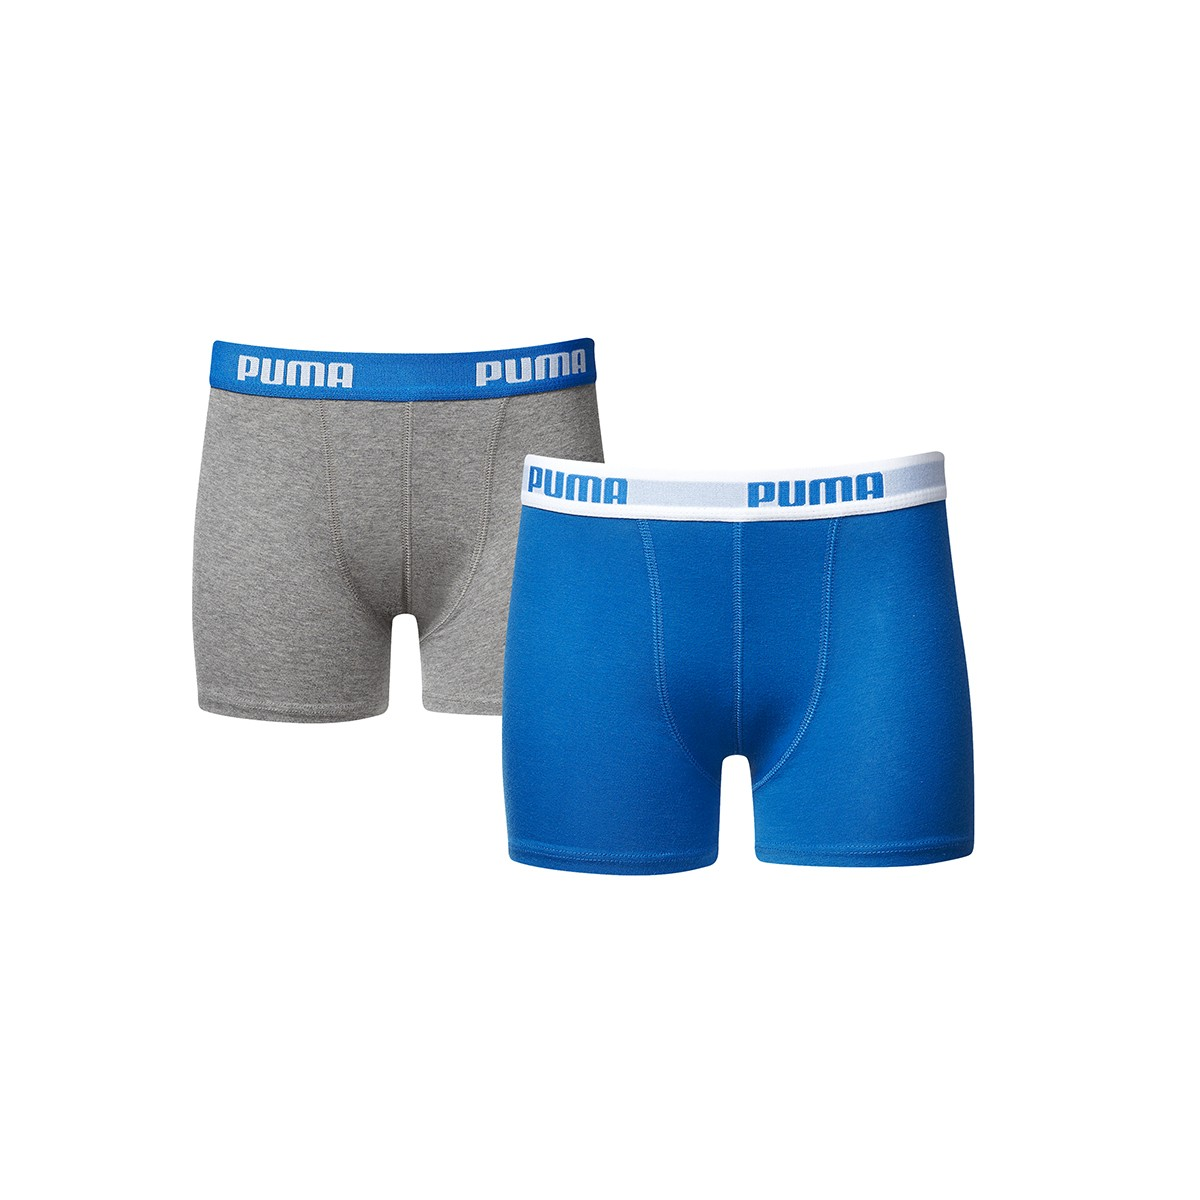 Boxer 2 pack